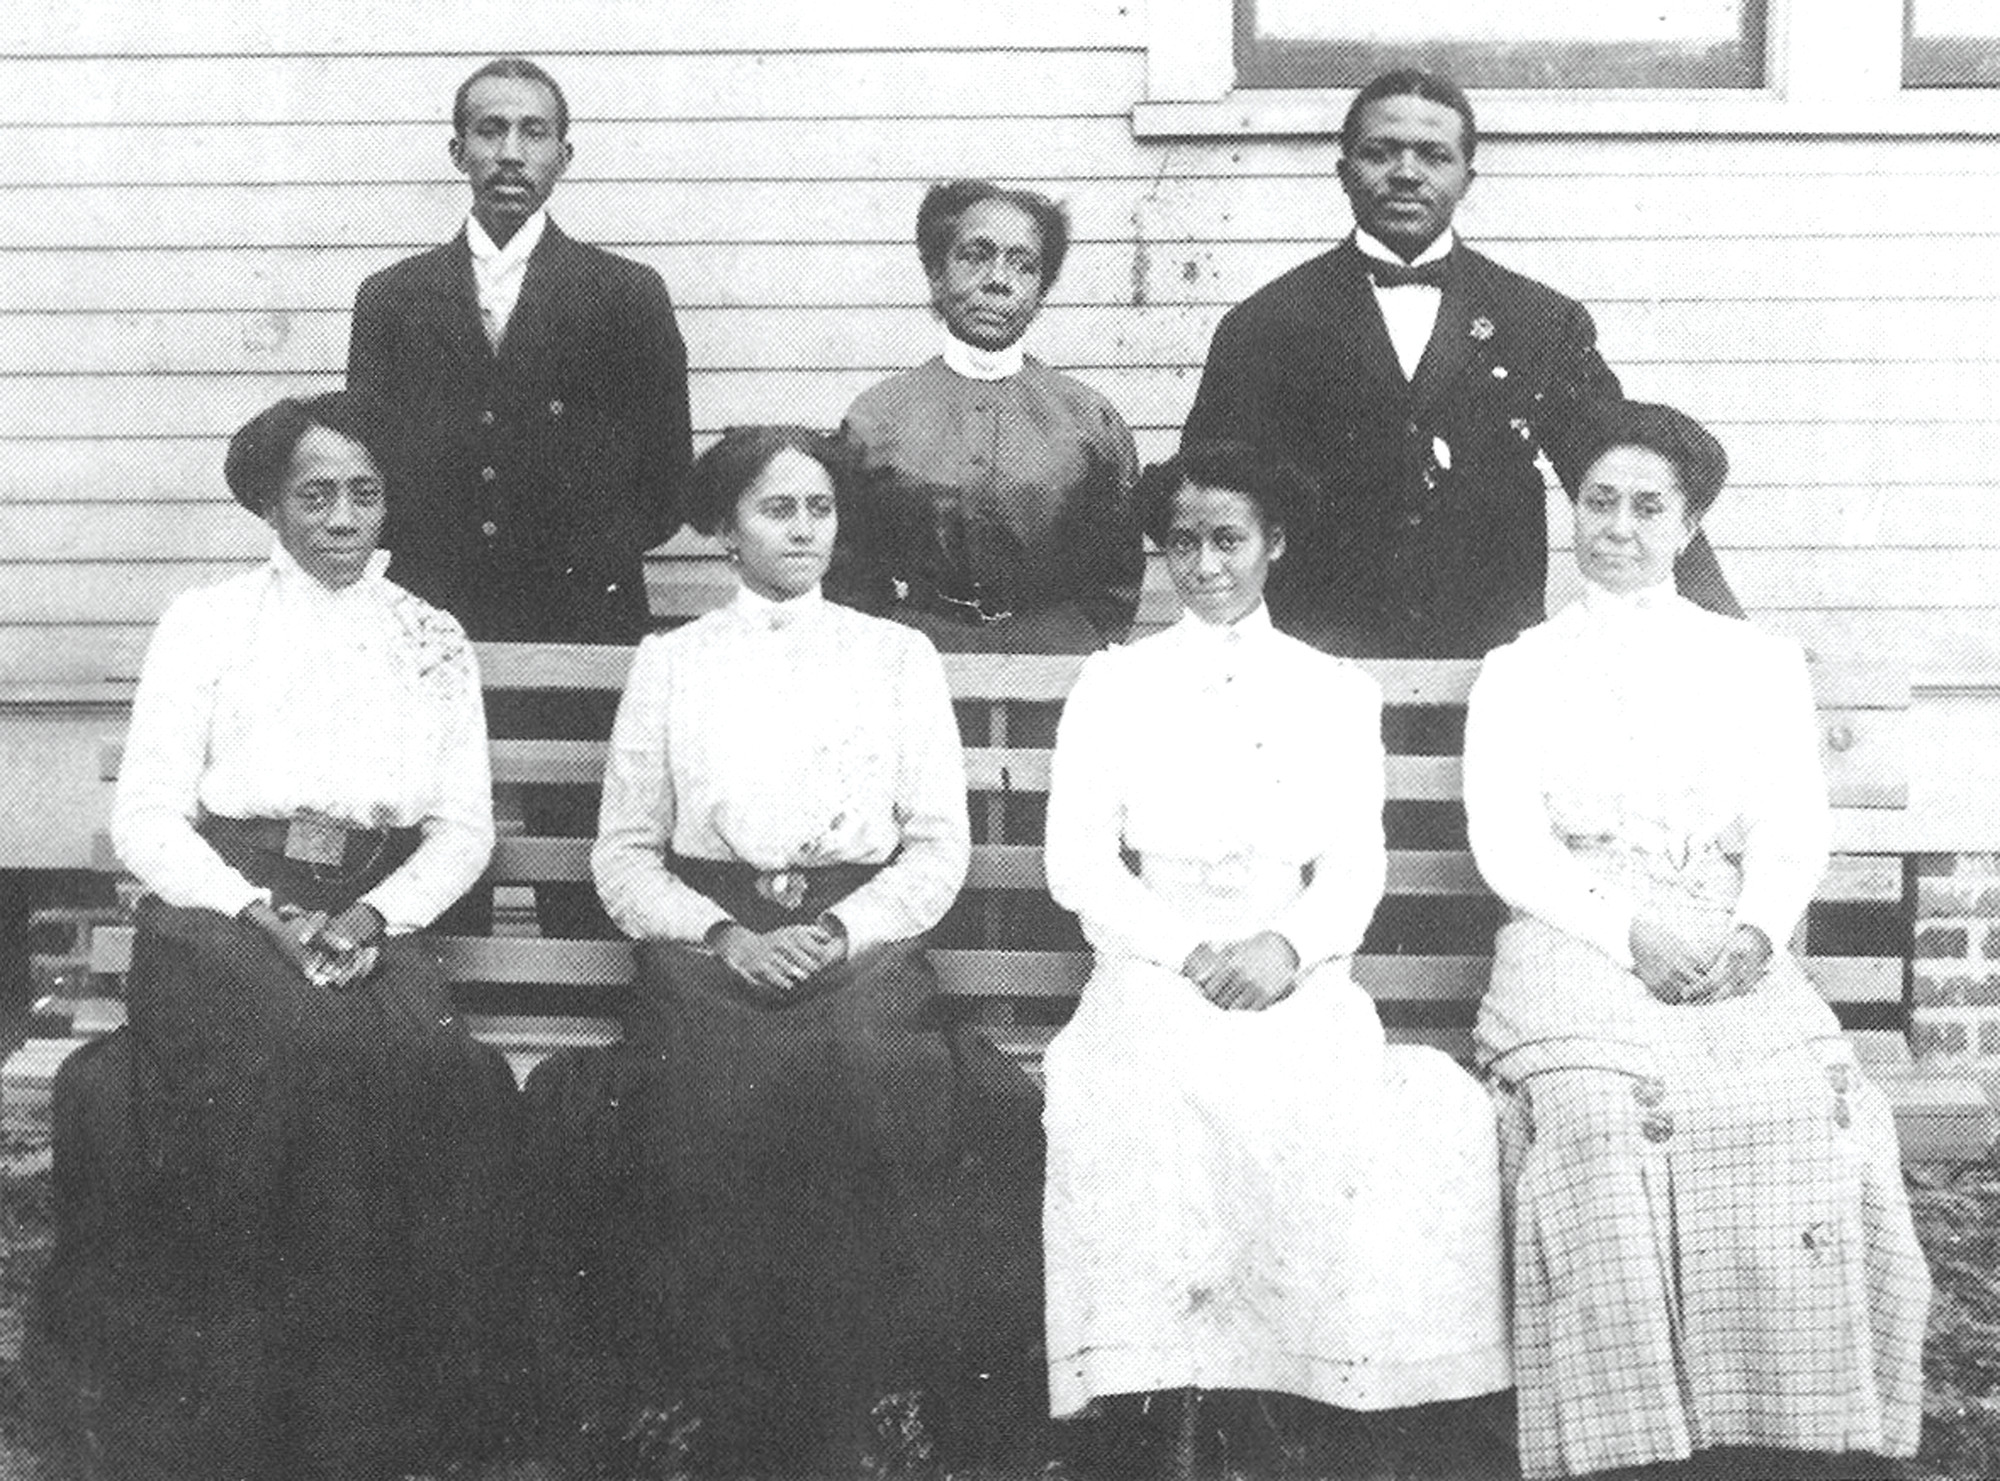 The faculty at the Lincoln Graded School, circa 1911, are seen in this photo. Seated left to right are Anna Davis, Edna Lowery, Prudence Lewis and Mamie Glover. Standing are, from left, J.C. Prioleau, assistant principal; Martha Savage; and C.A. Lawson, principal. Savage and Glover are the teachers for whom Savage-Glover School was named.